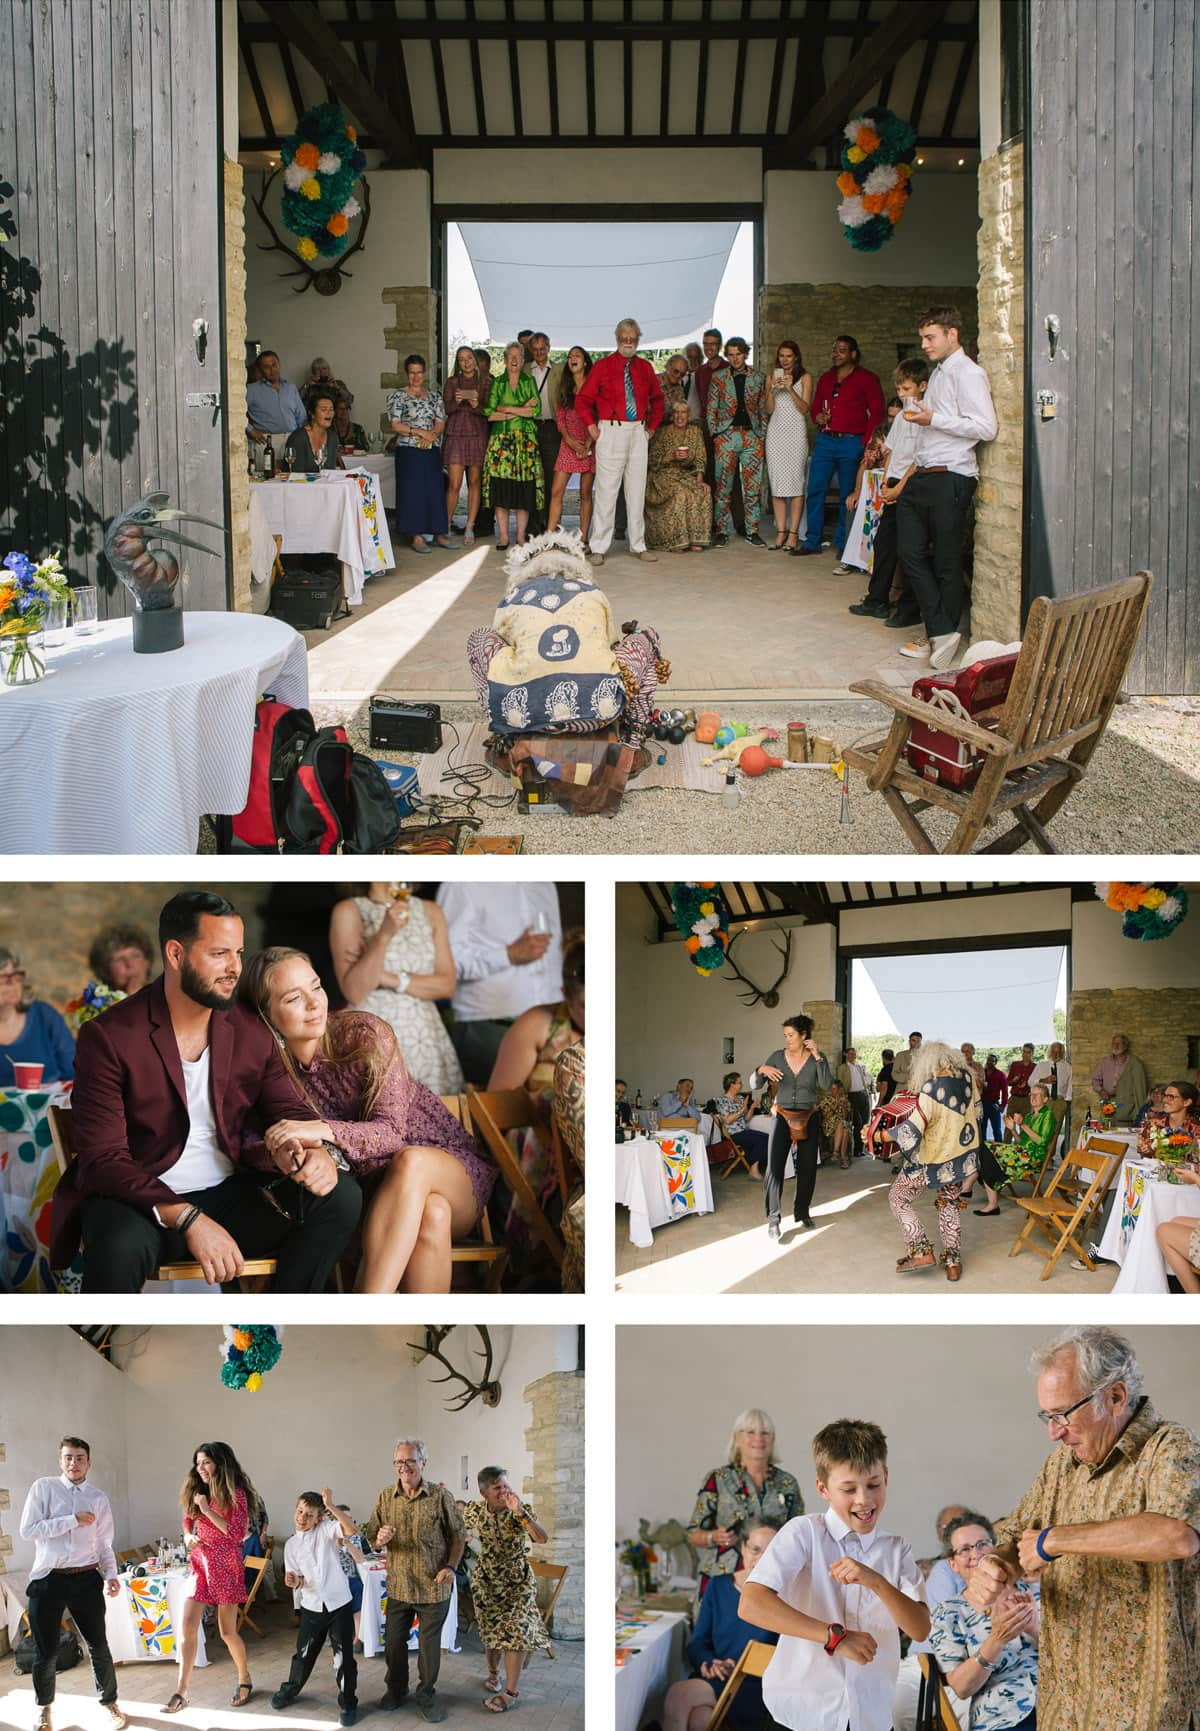 Collage of images of guests watching and dancing to the music of Italian street performer The Birdman